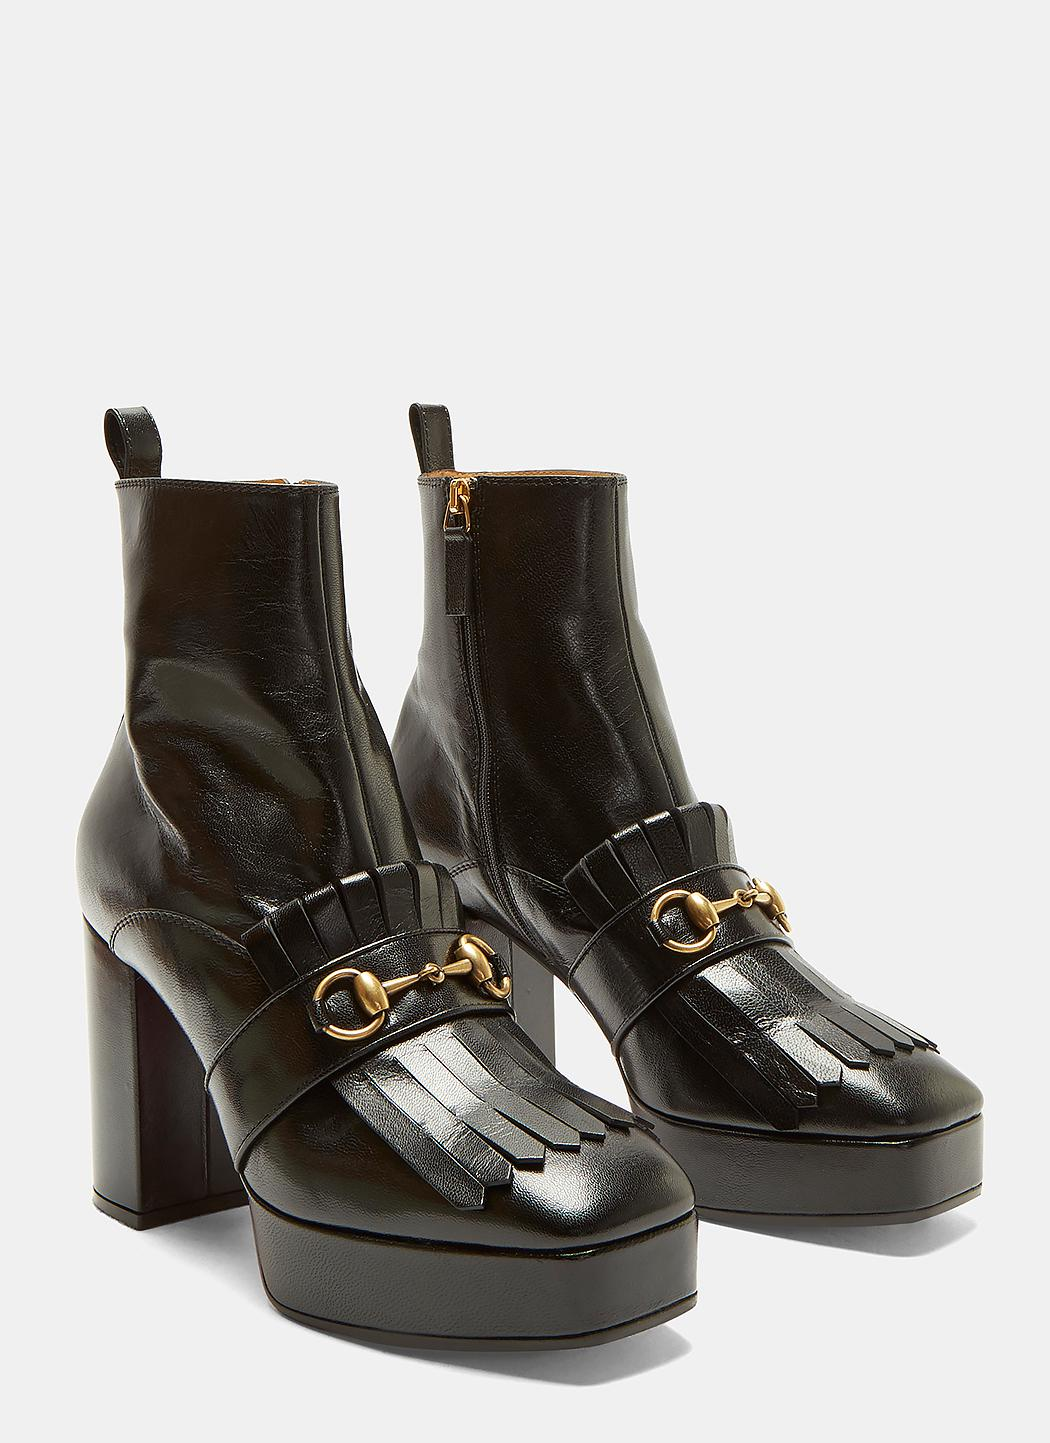 Gucci Fringed Horse Buckle Ankle Boots NIhCKv4De